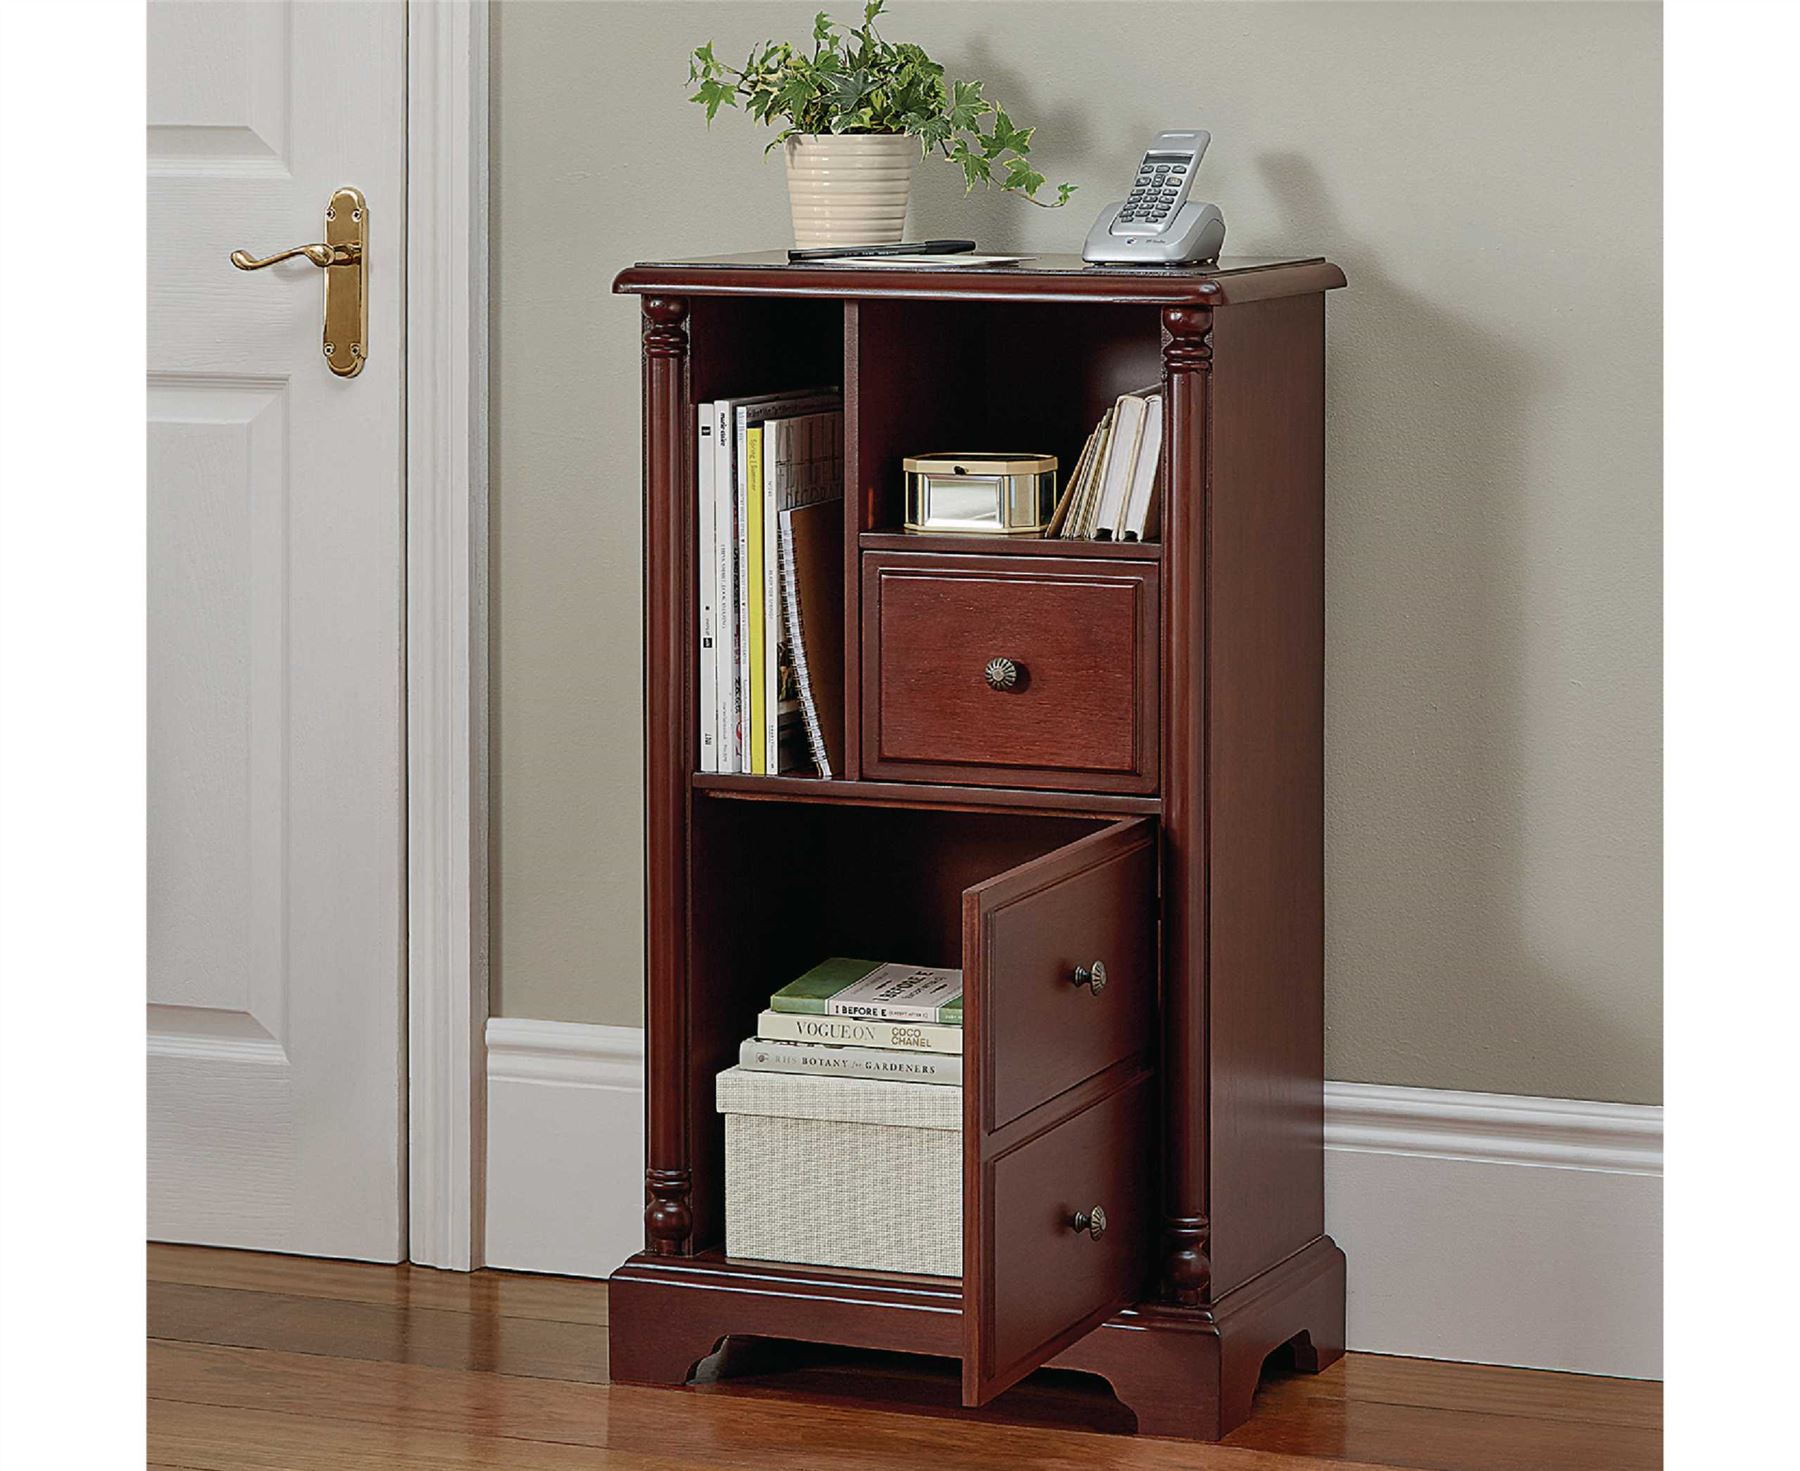 Telephone table cabinet stand living room hall furniture for Living hall furniture